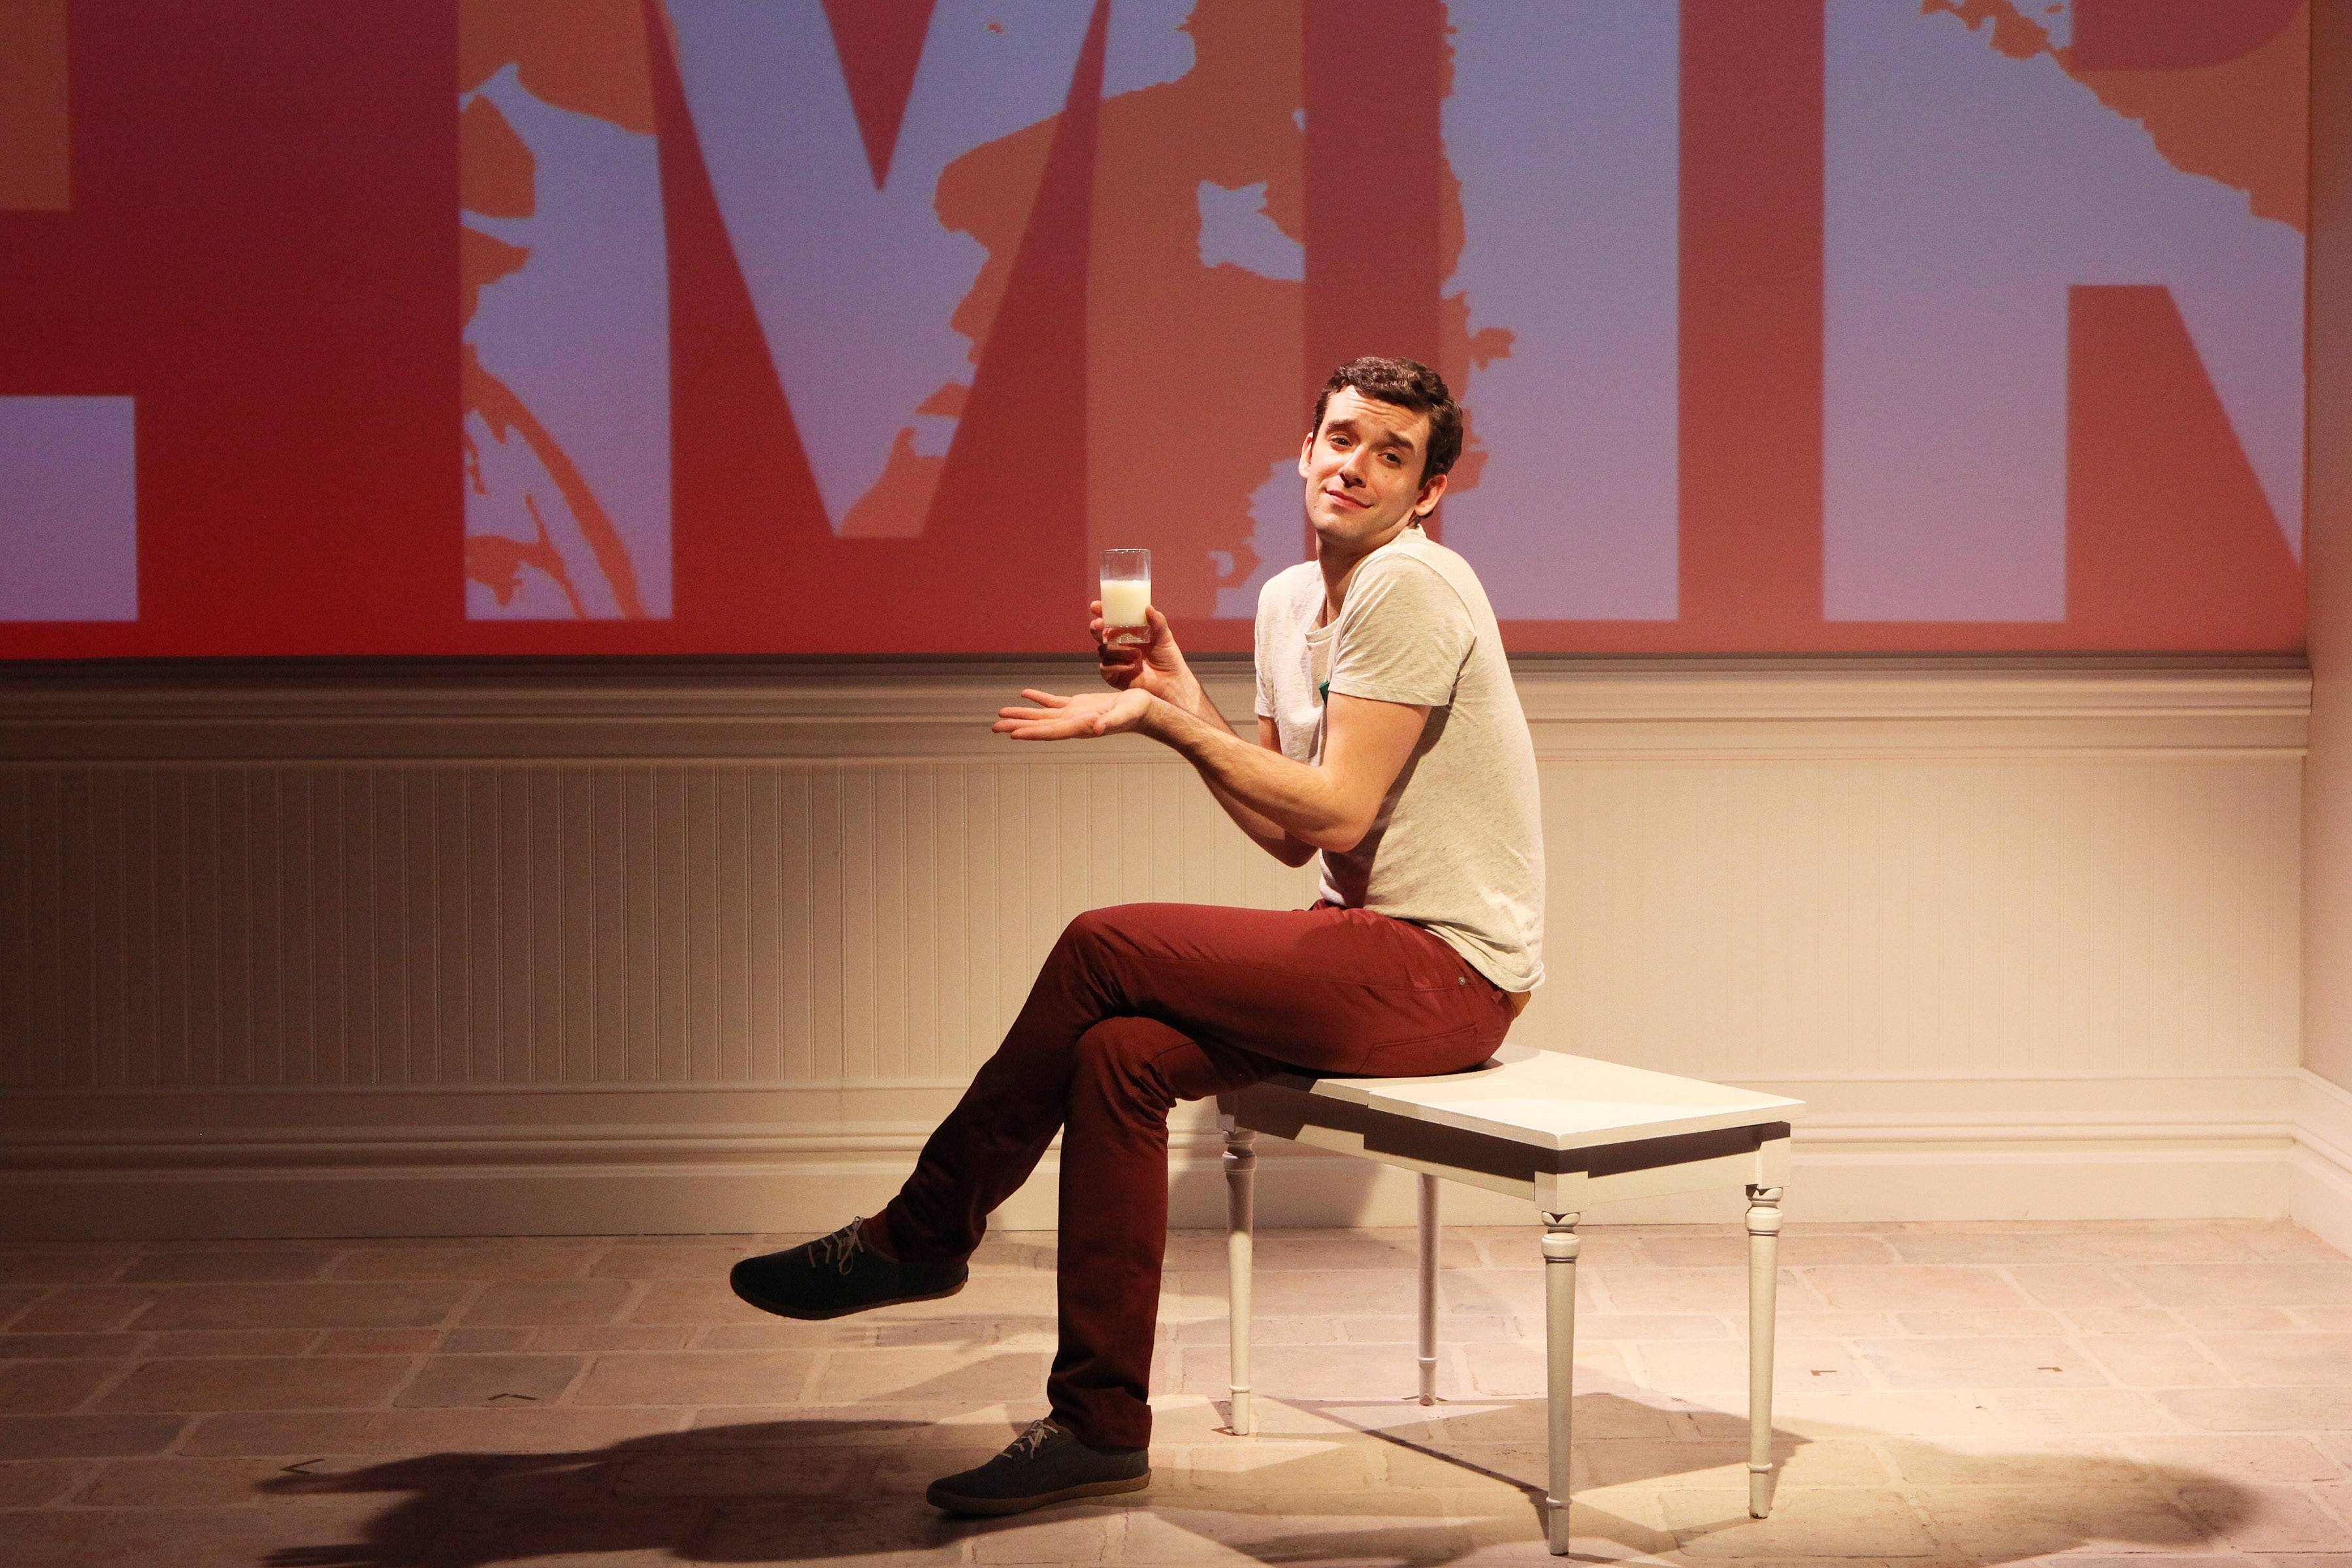 "Juilliard-trained actor Michael Urie received loads of critical acclaim for the off-Broadway comedy ""Buyer & Cellar,"" in which he plays a struggling actor who lands a job as a clerk in an underground mall of quaint shops owned by Barbra Streisand. The one-man show goes on tour with Urie starring at the Broadway Playhouse at Water Tower Place in Chicago."